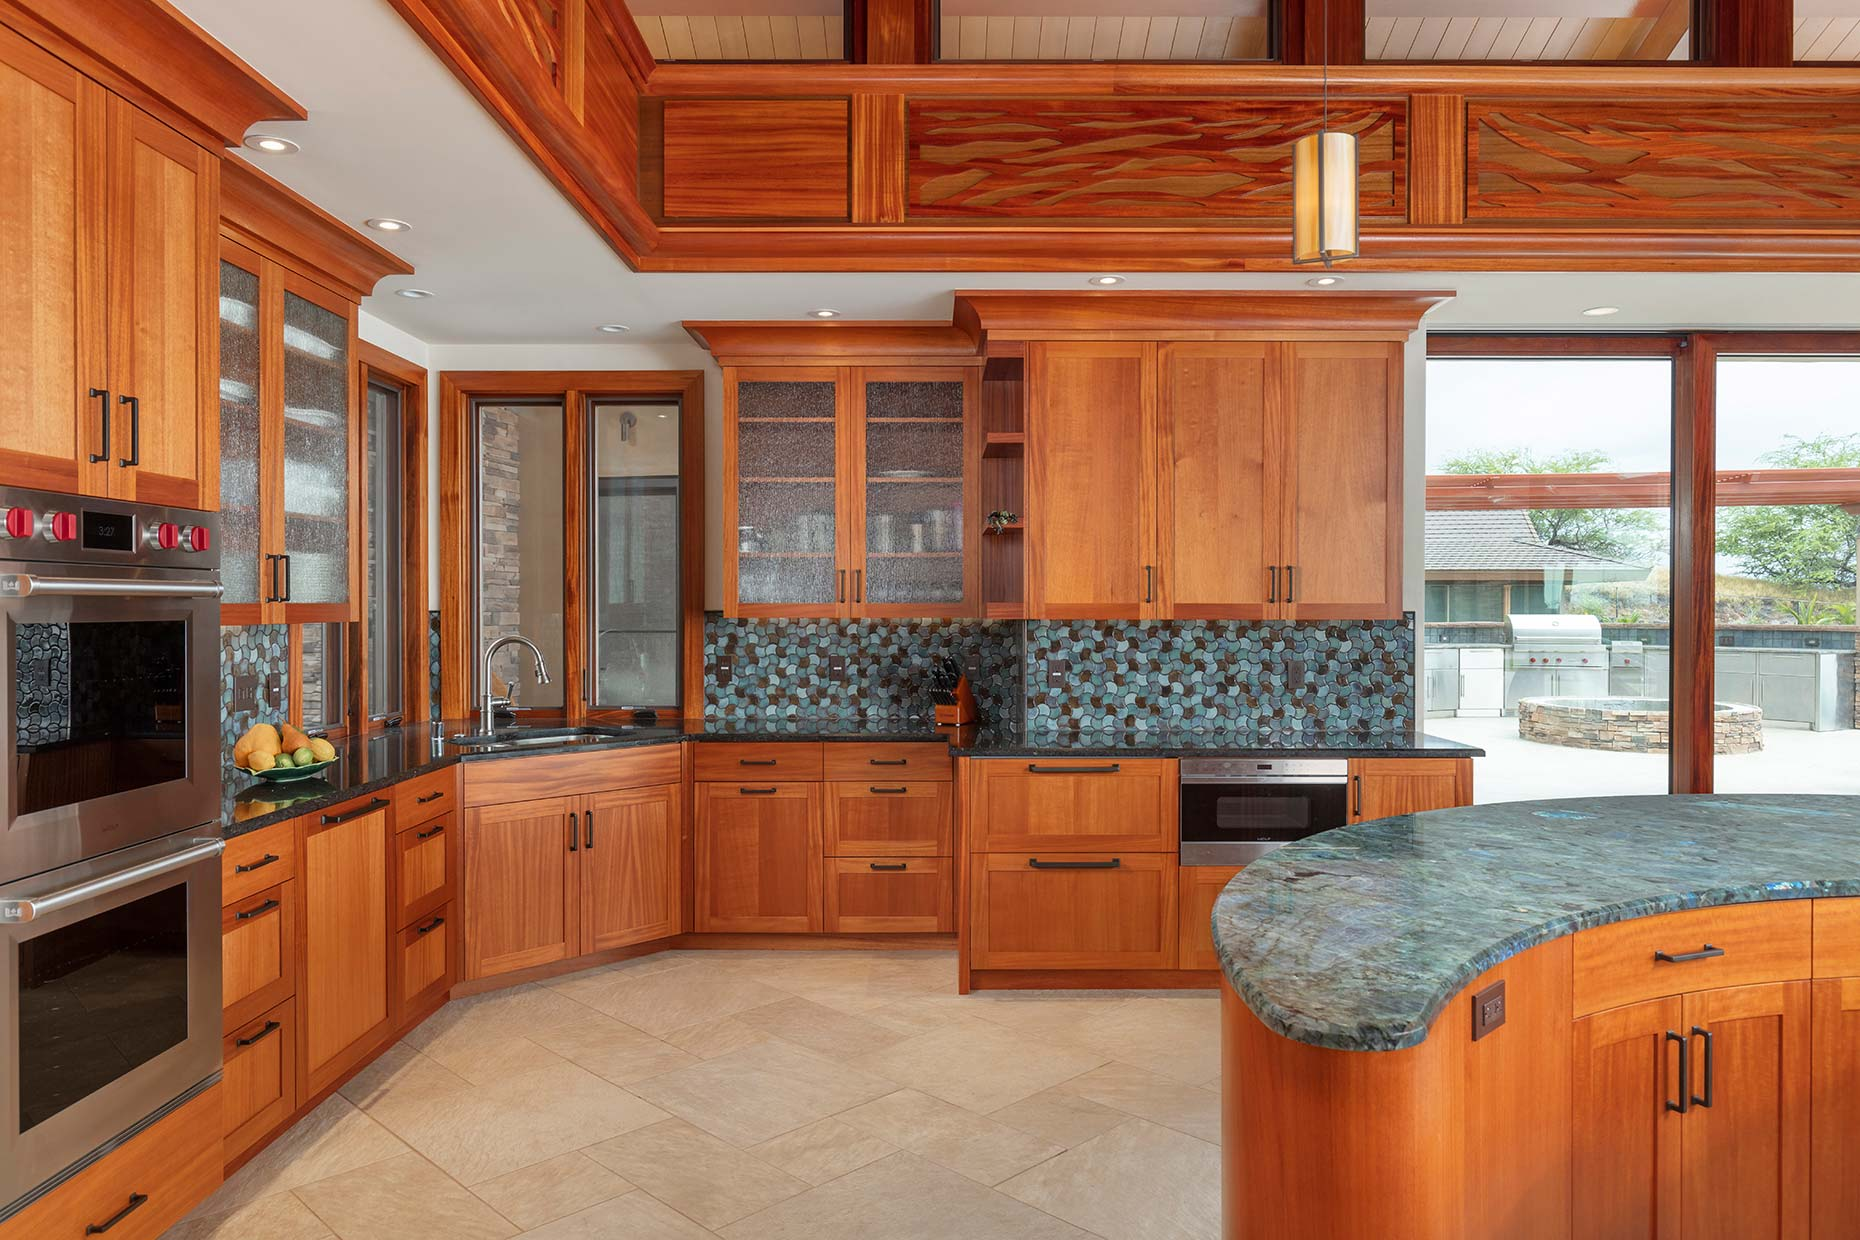 Hawaii luxury kitchen new construction home